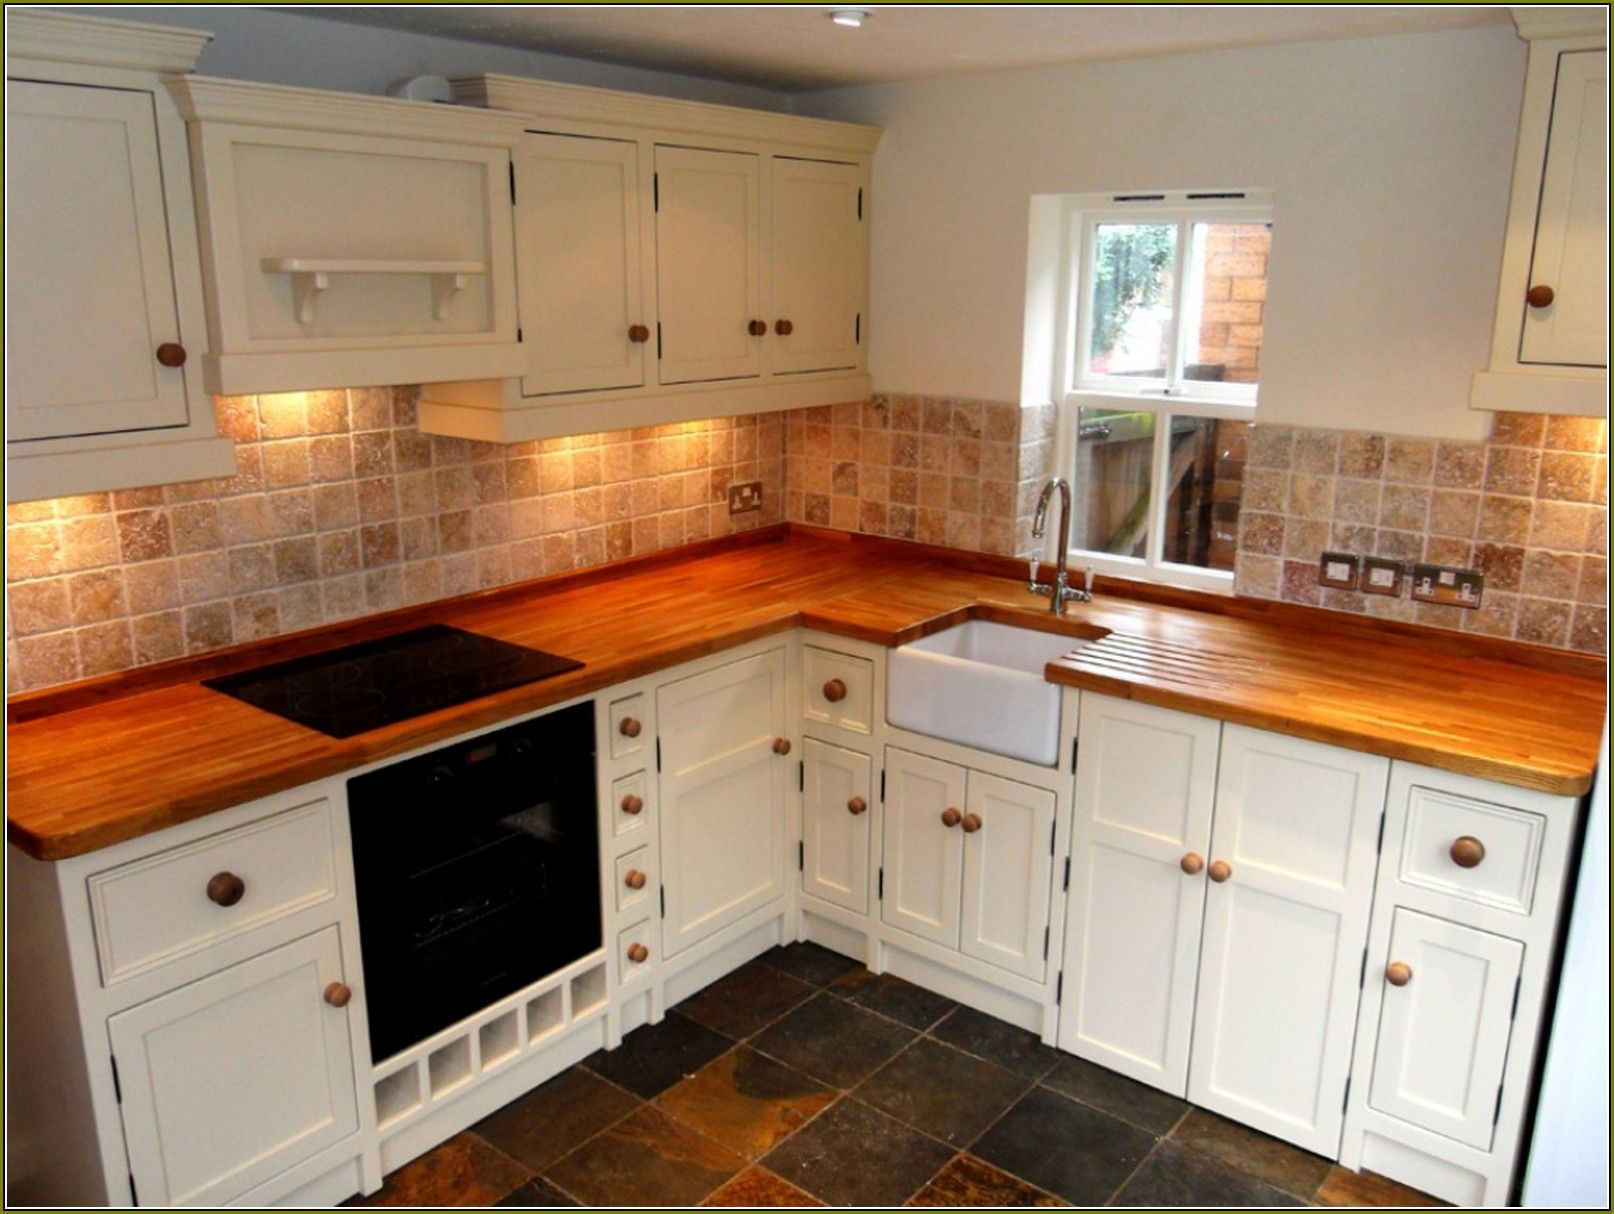 Find Kitchen Cabinets Tile Backsplash With Wood Countertop Google Search